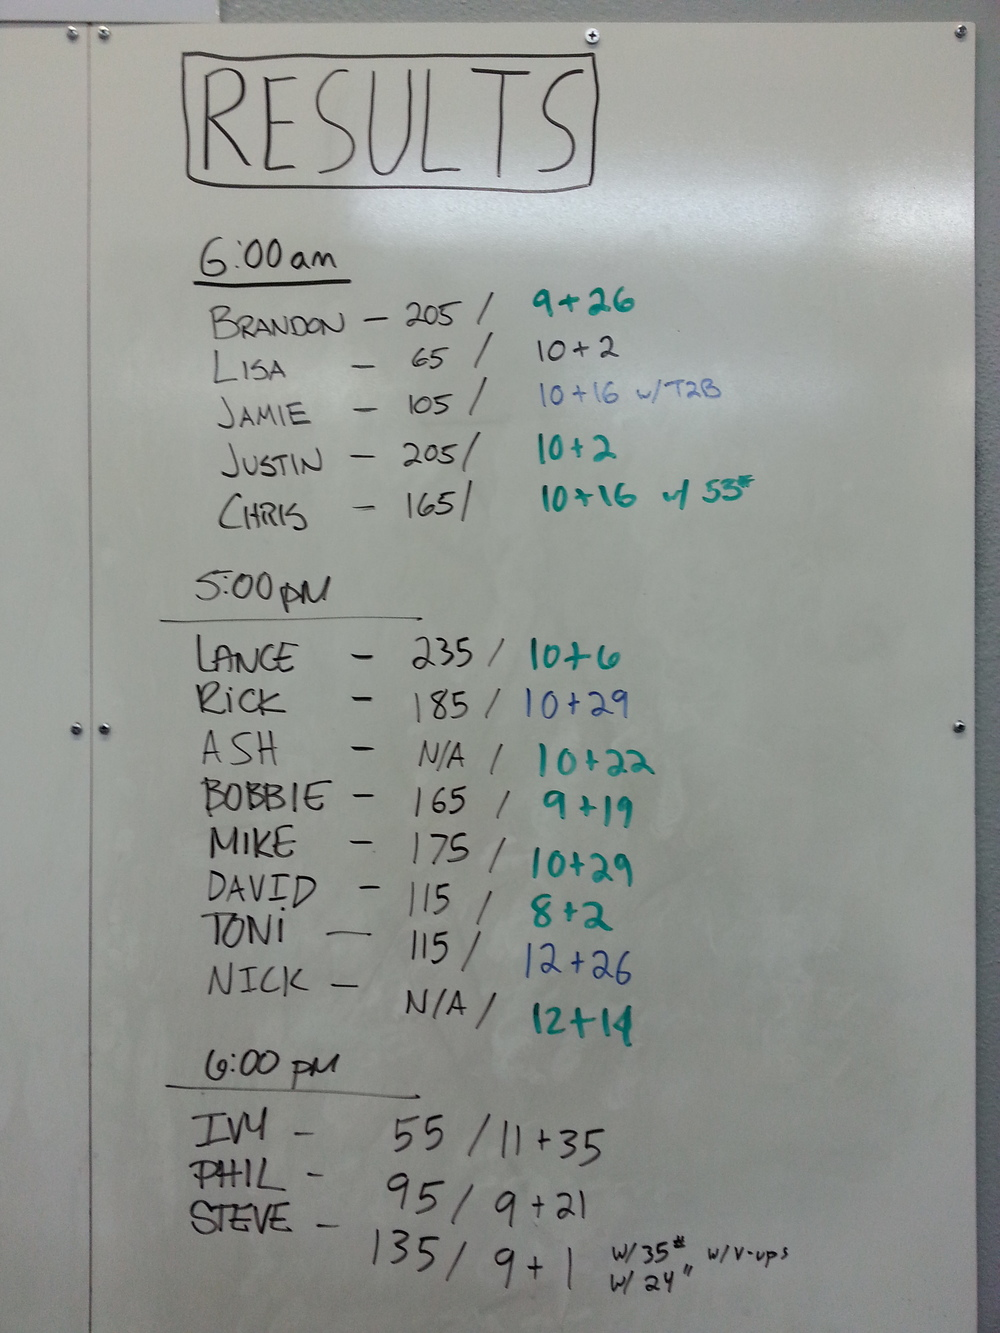 Times from the Back Squat and 15 min AMRAP, great job!